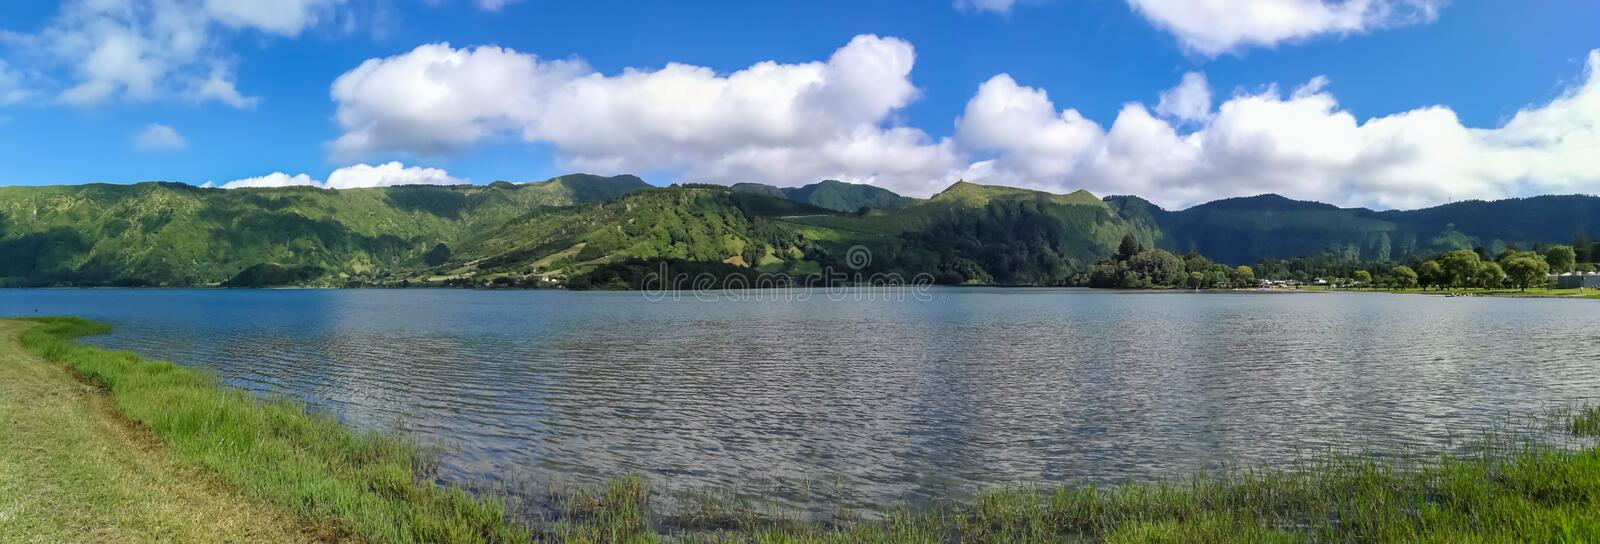 Lagoa das Sete Cidades is located on the island of Sao Miguel, Azores and is characterized by the double coloration of its waters royalty free stock images